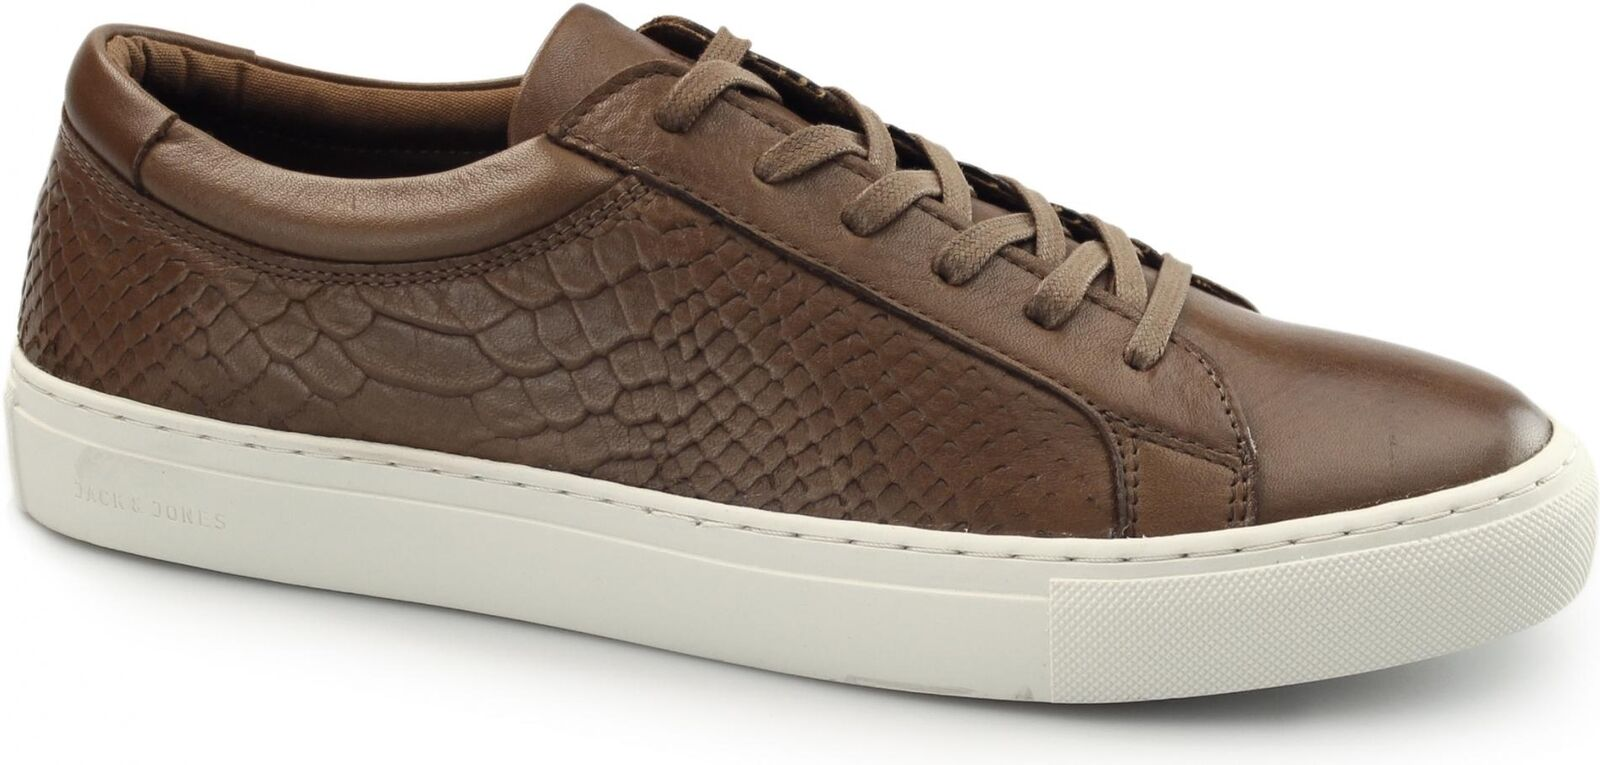 Jack & Jones GALAXY Mens Leather Reptile Texturot Casual Lace Up Trainers Cognac